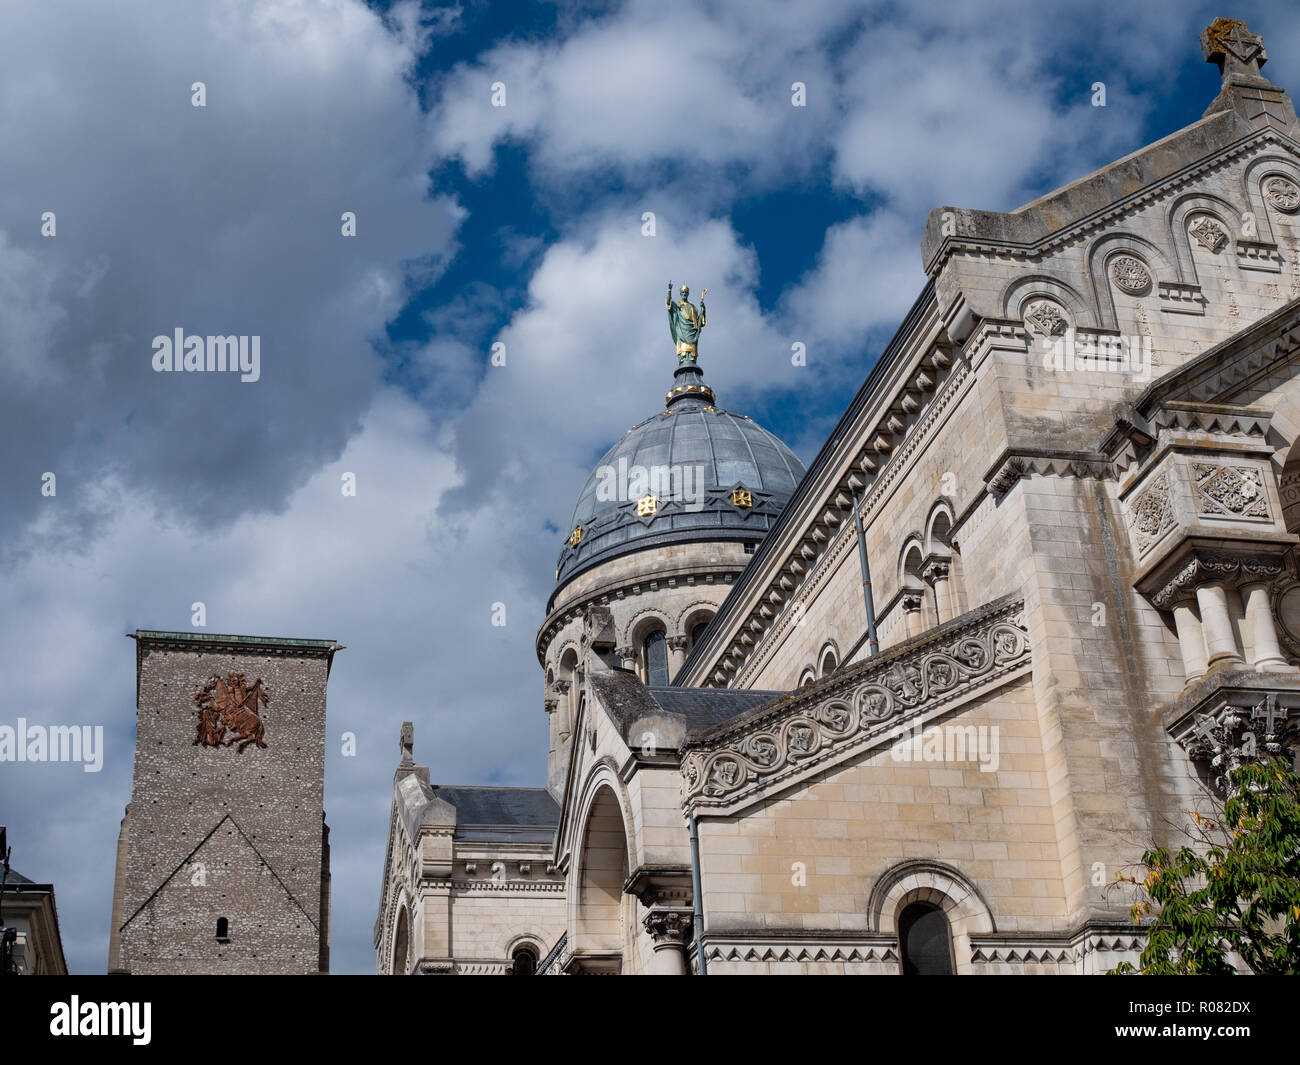 Statue above the basilica of St Martin. It's a Roman Catholic basilica dedicated to Saint Martin of Tours, in France, on whose tomb it was built. - Stock Image